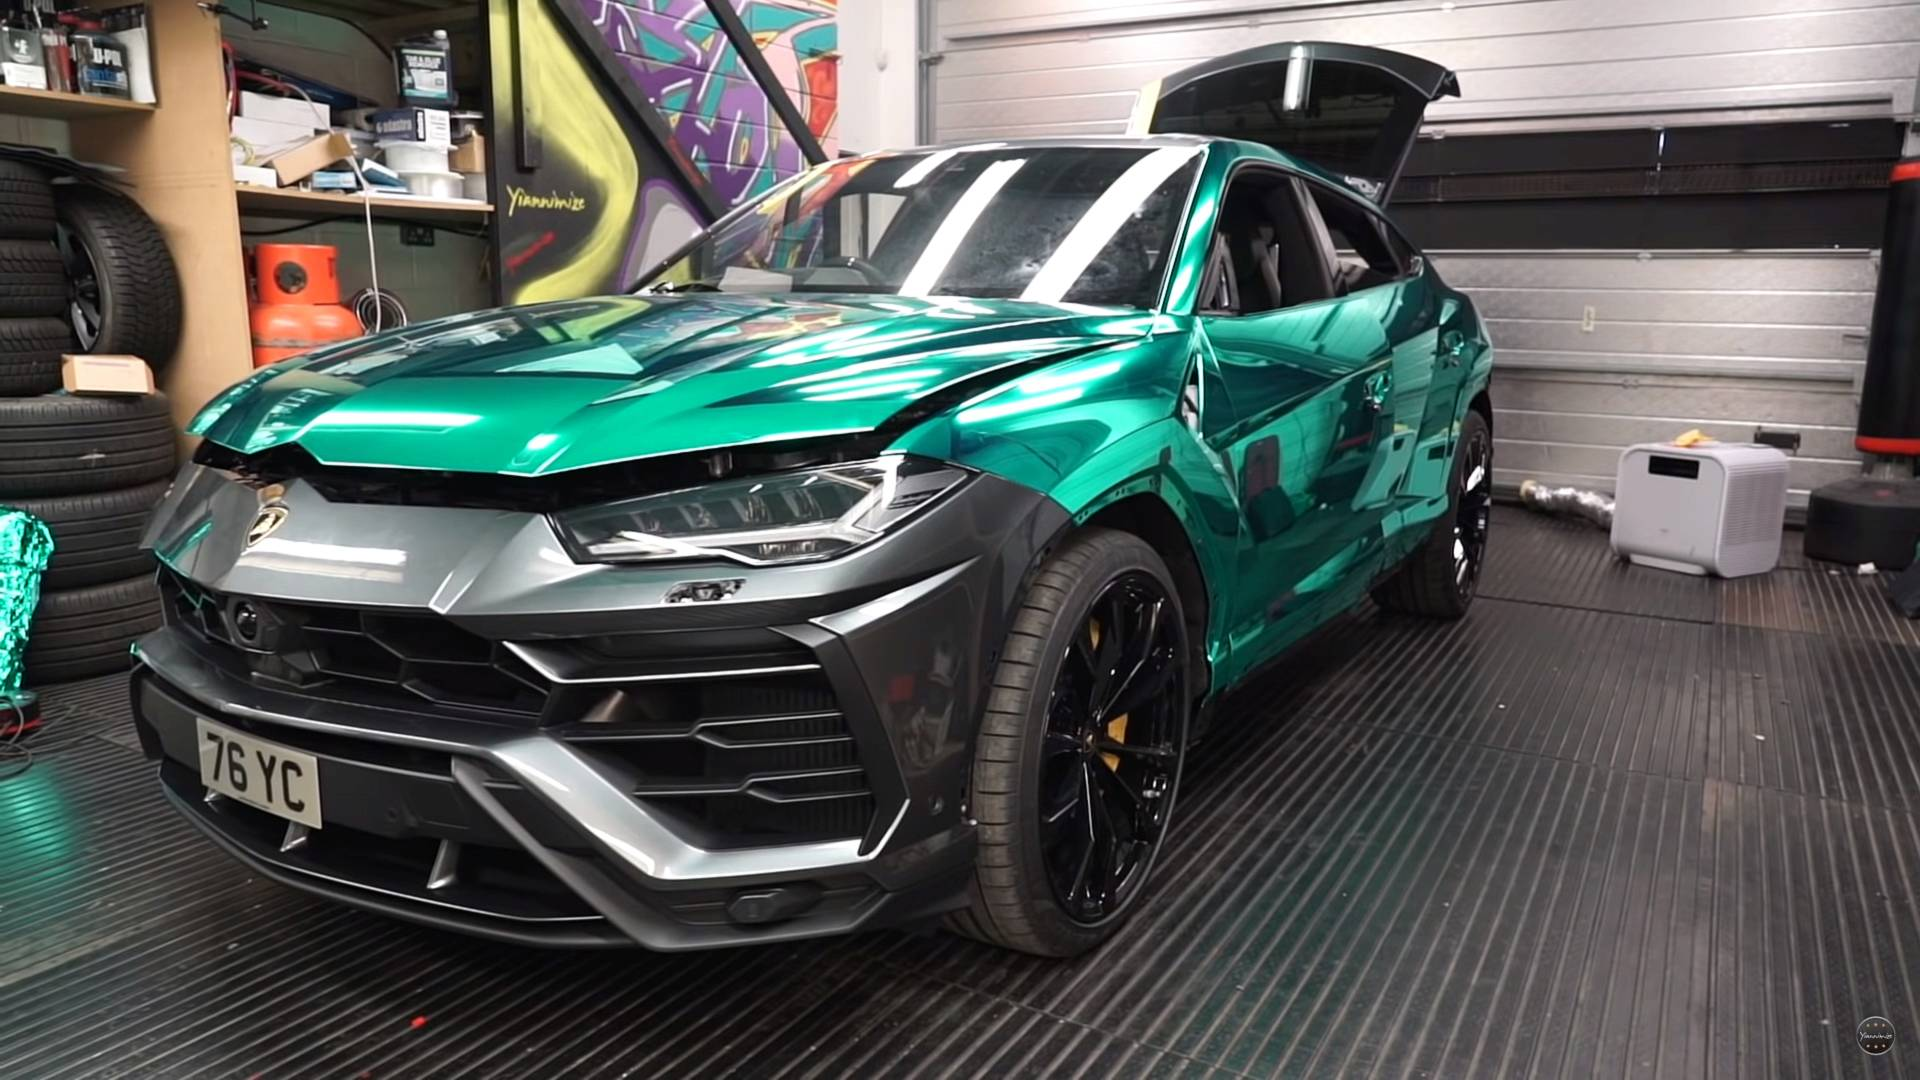 lamborghini aventador uk price with Lamborghini Urus Gets Turquoise Chrome Wrap To Match Aventador S 127951 on Mercedes Glc 2017 Mercedes Glc 2017 Price In Uae moreover Lamborghini Urus Gets Turquoise Chrome Wrap To Match Aventador S 127951 further Knightsbridge Filled Arab Owned Supercars as well Jaguar Xfrs Jaguar S First Drive Review Jaguar Xf 2015 Review further Bmw M2 On Hre P104 Forged Wheels.